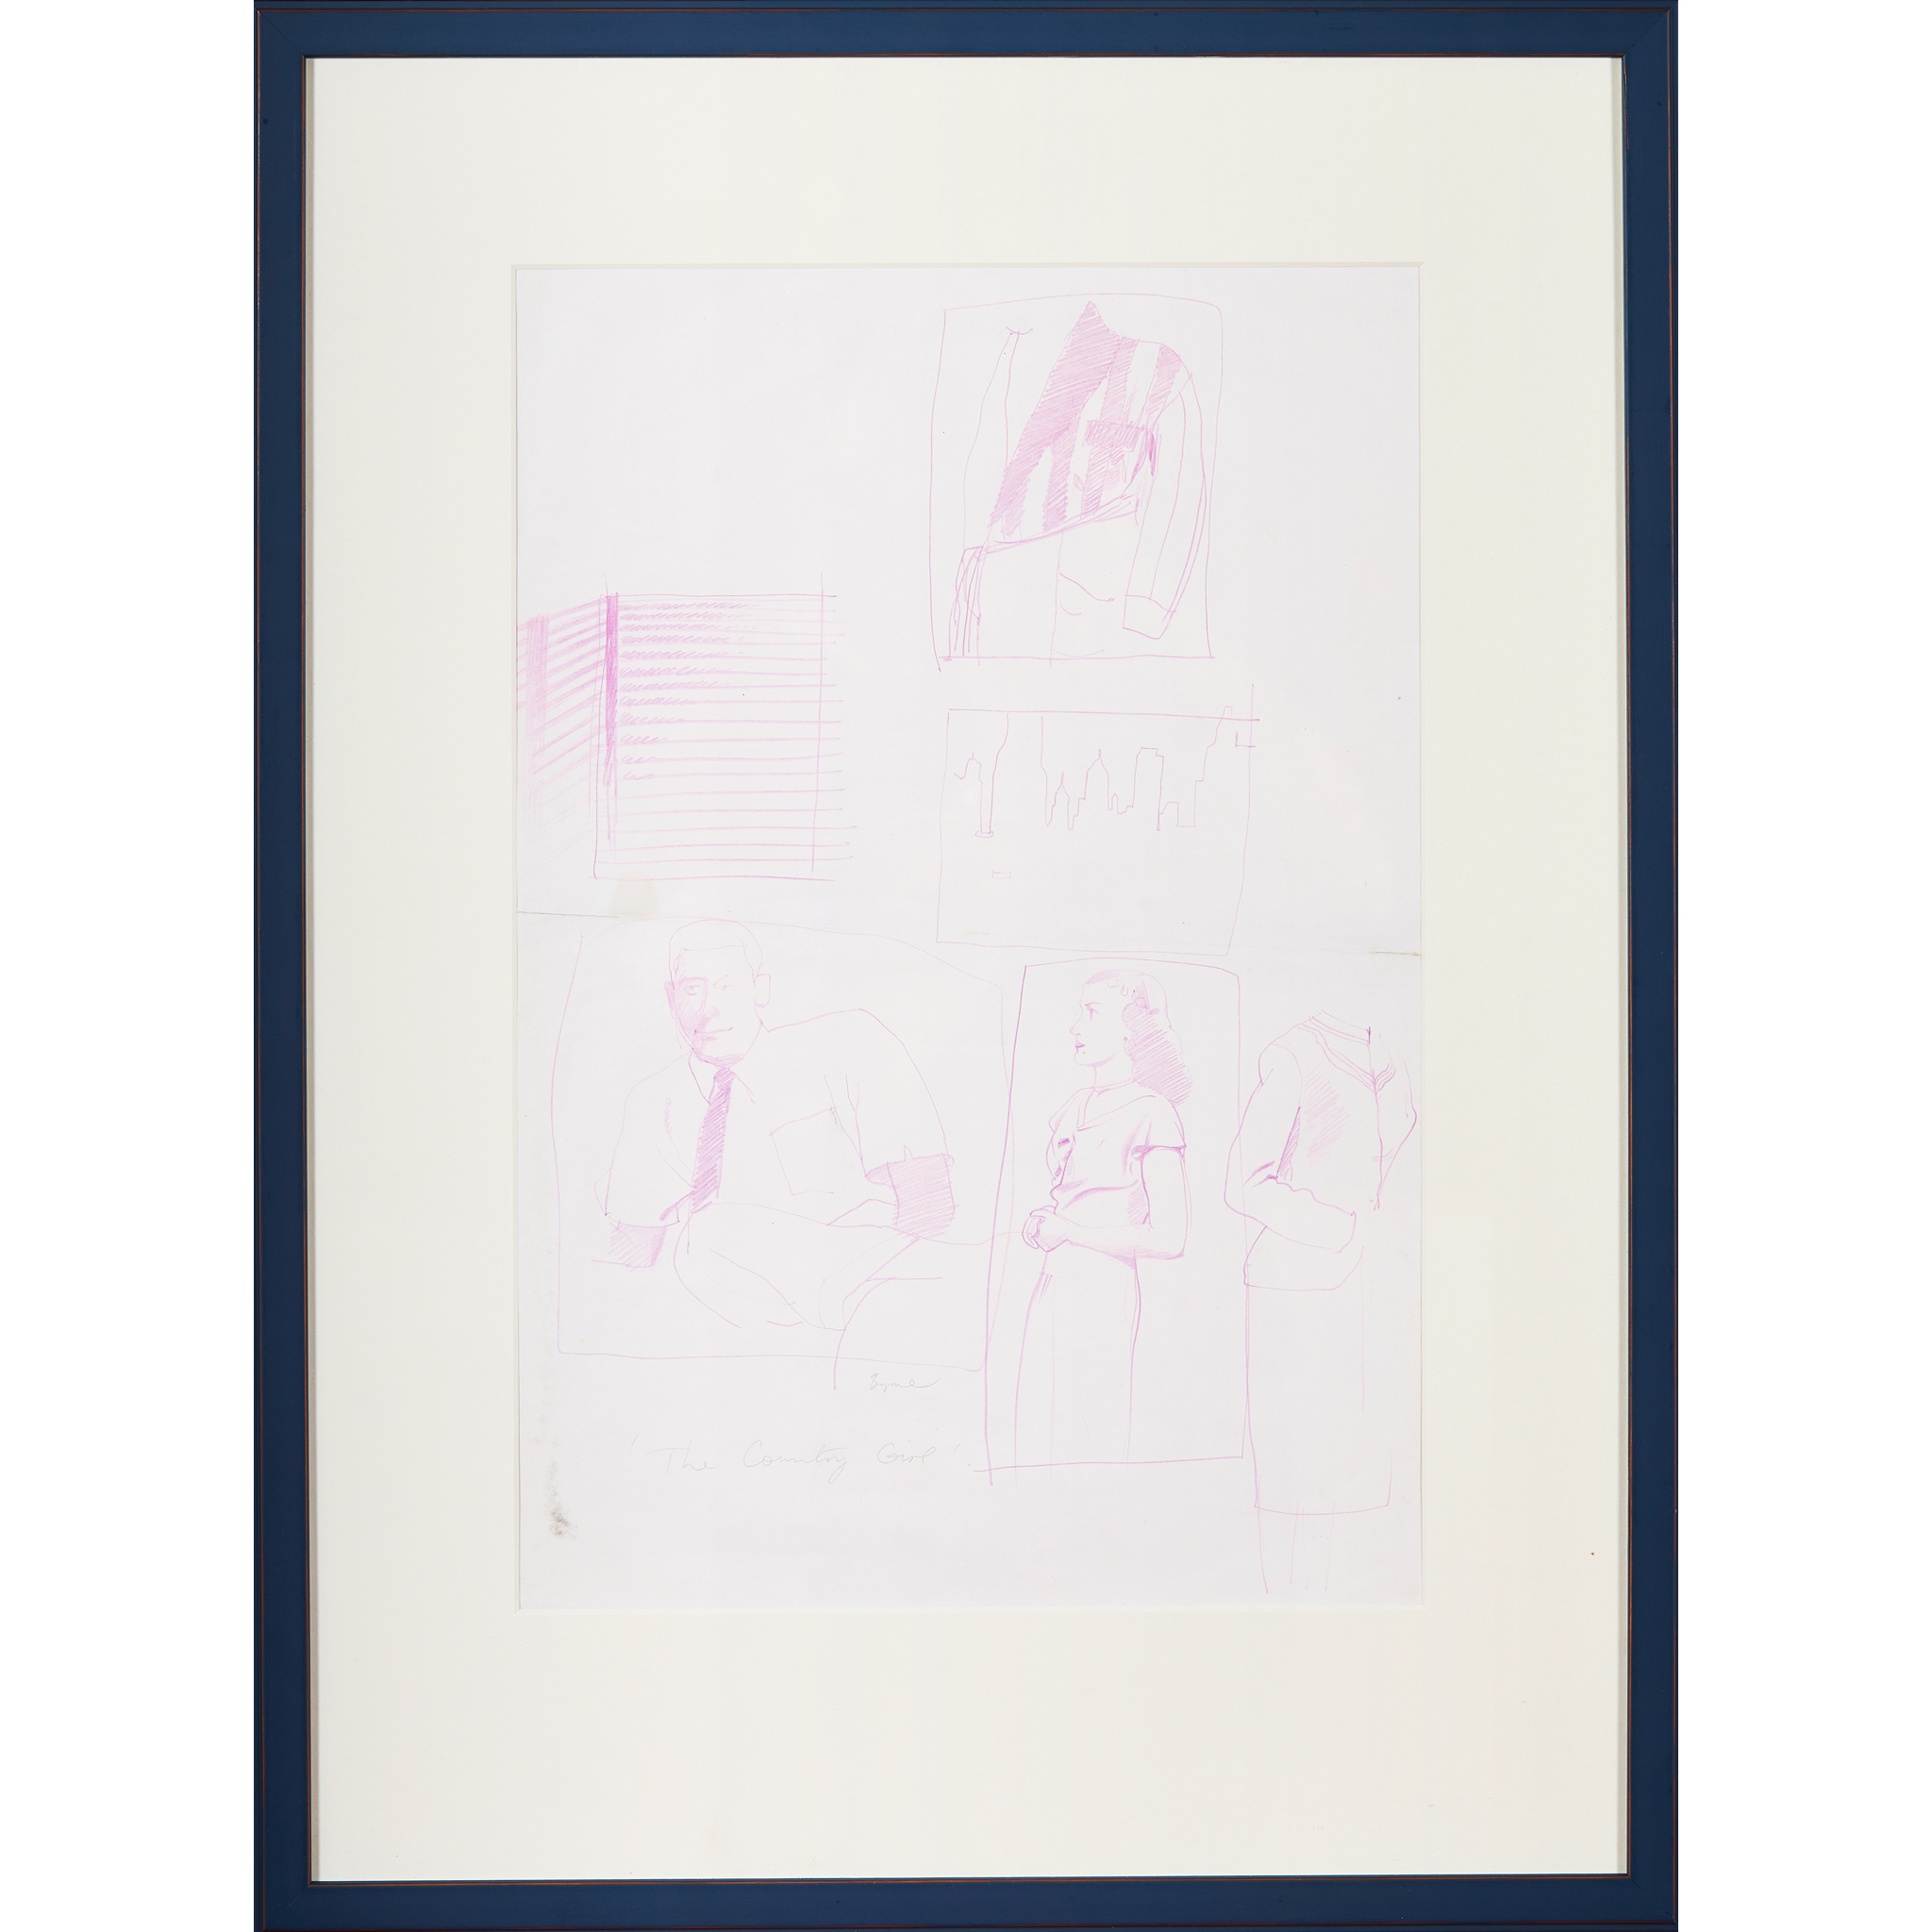 """§ JOHN BYRNE (SCOTTISH 1940-) SKETCHES FROM """"THE COUNTRY GIRL"""" - Image 6 of 7"""